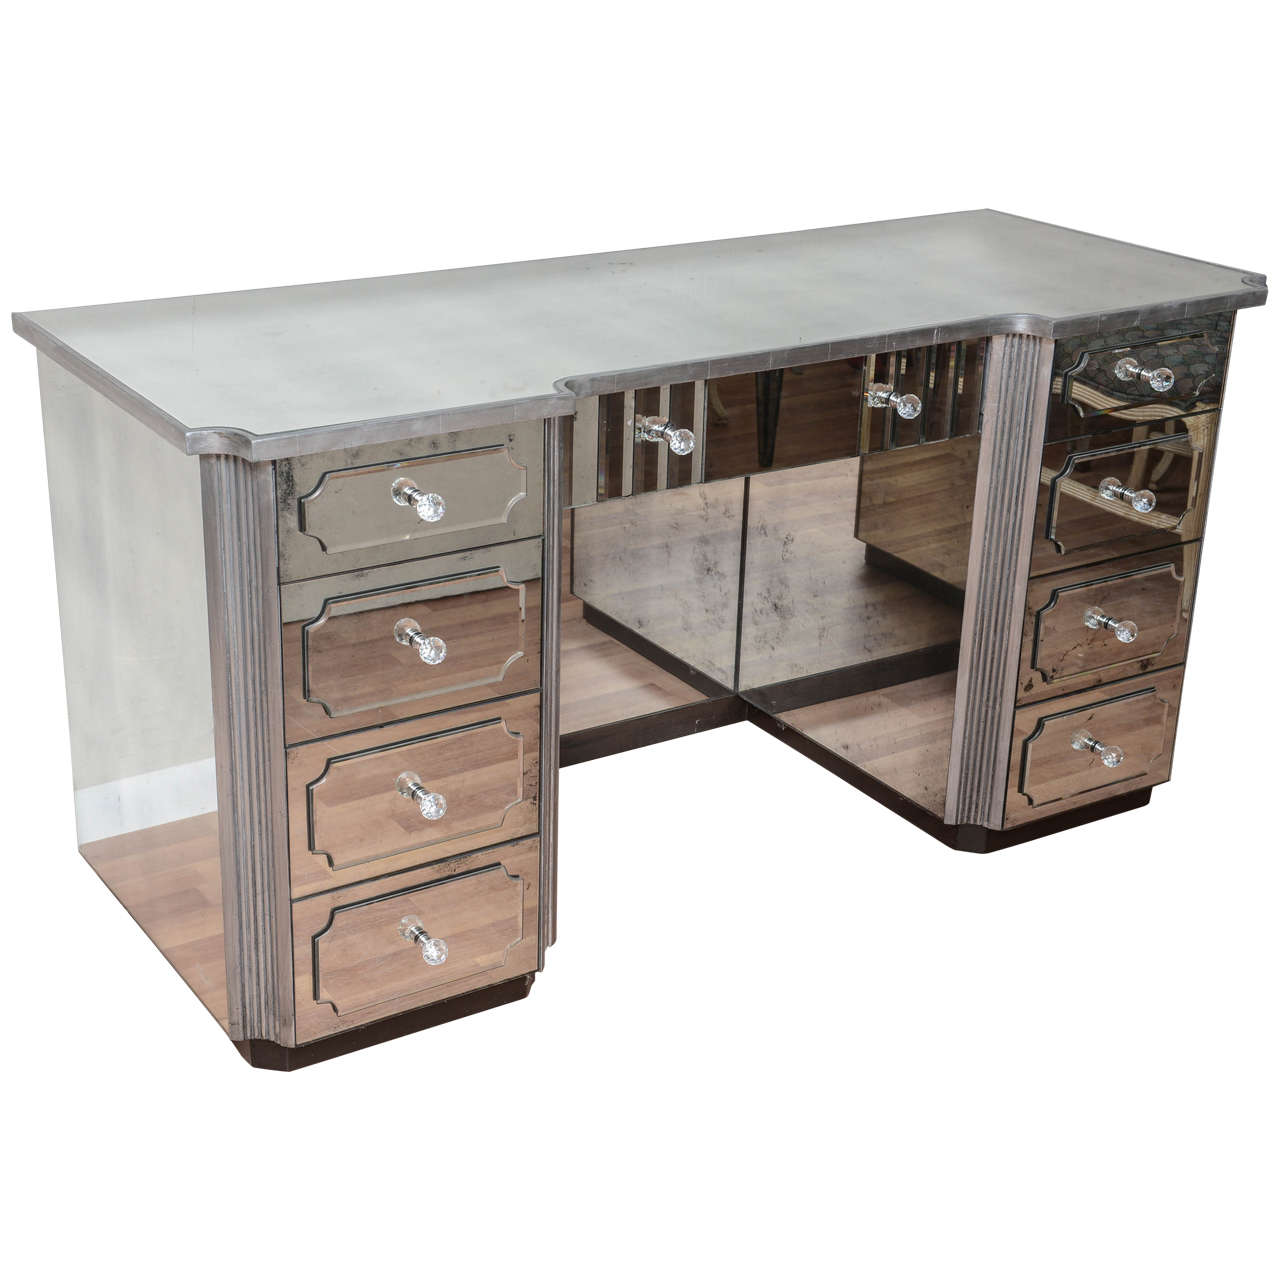 Mirror dresser table bestdressers 2017 for Vanity table with drawers no mirror